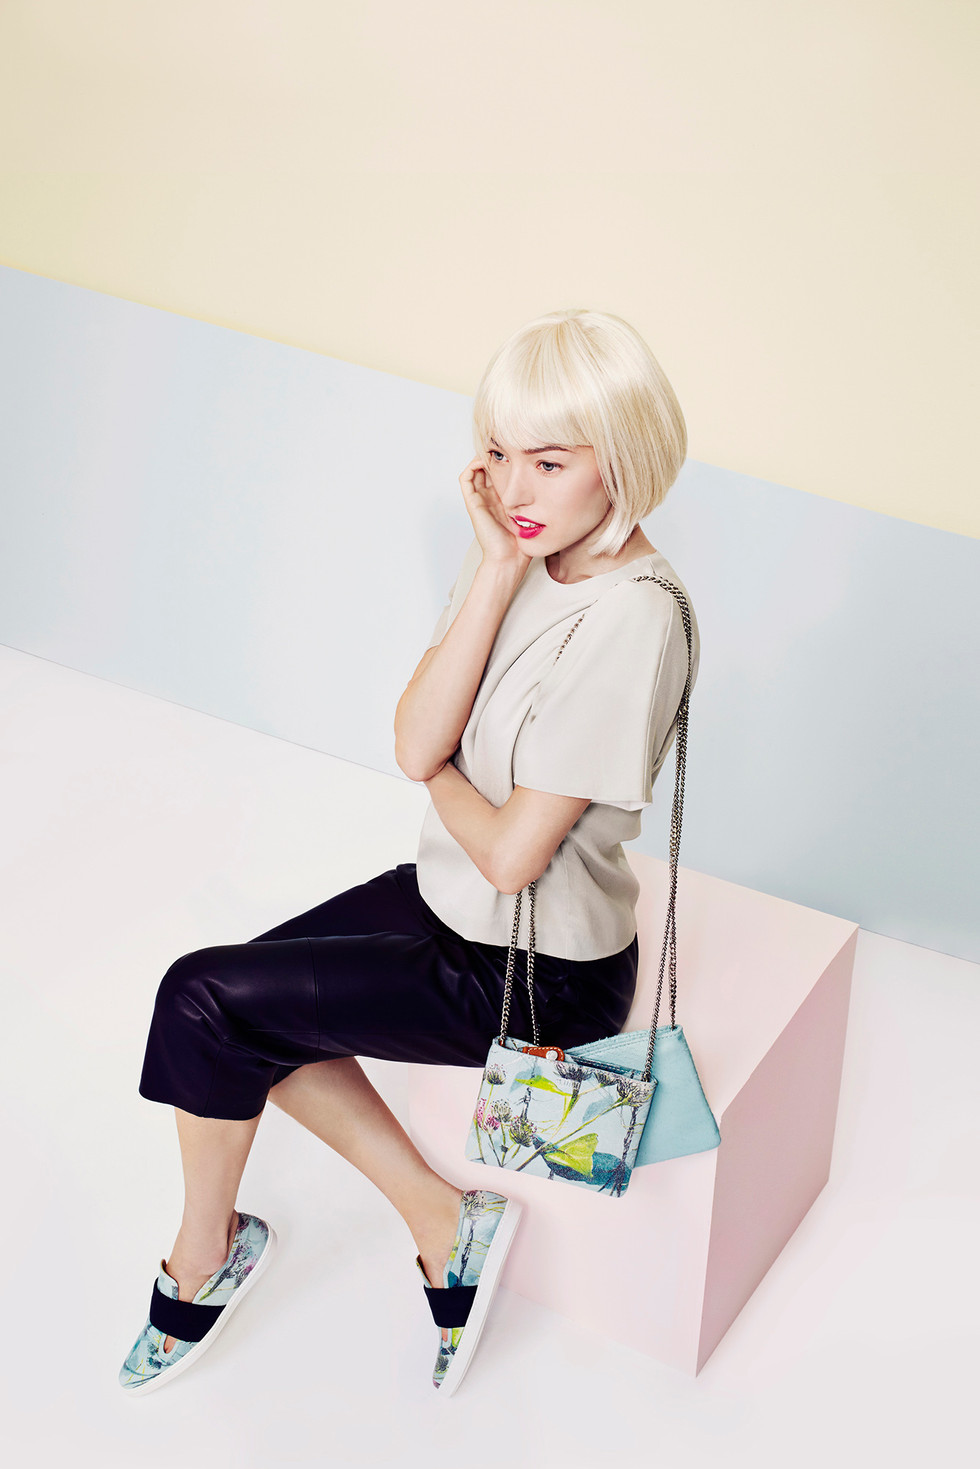 The shoe collection includes a few bag styles, creating a complete capsule collection.